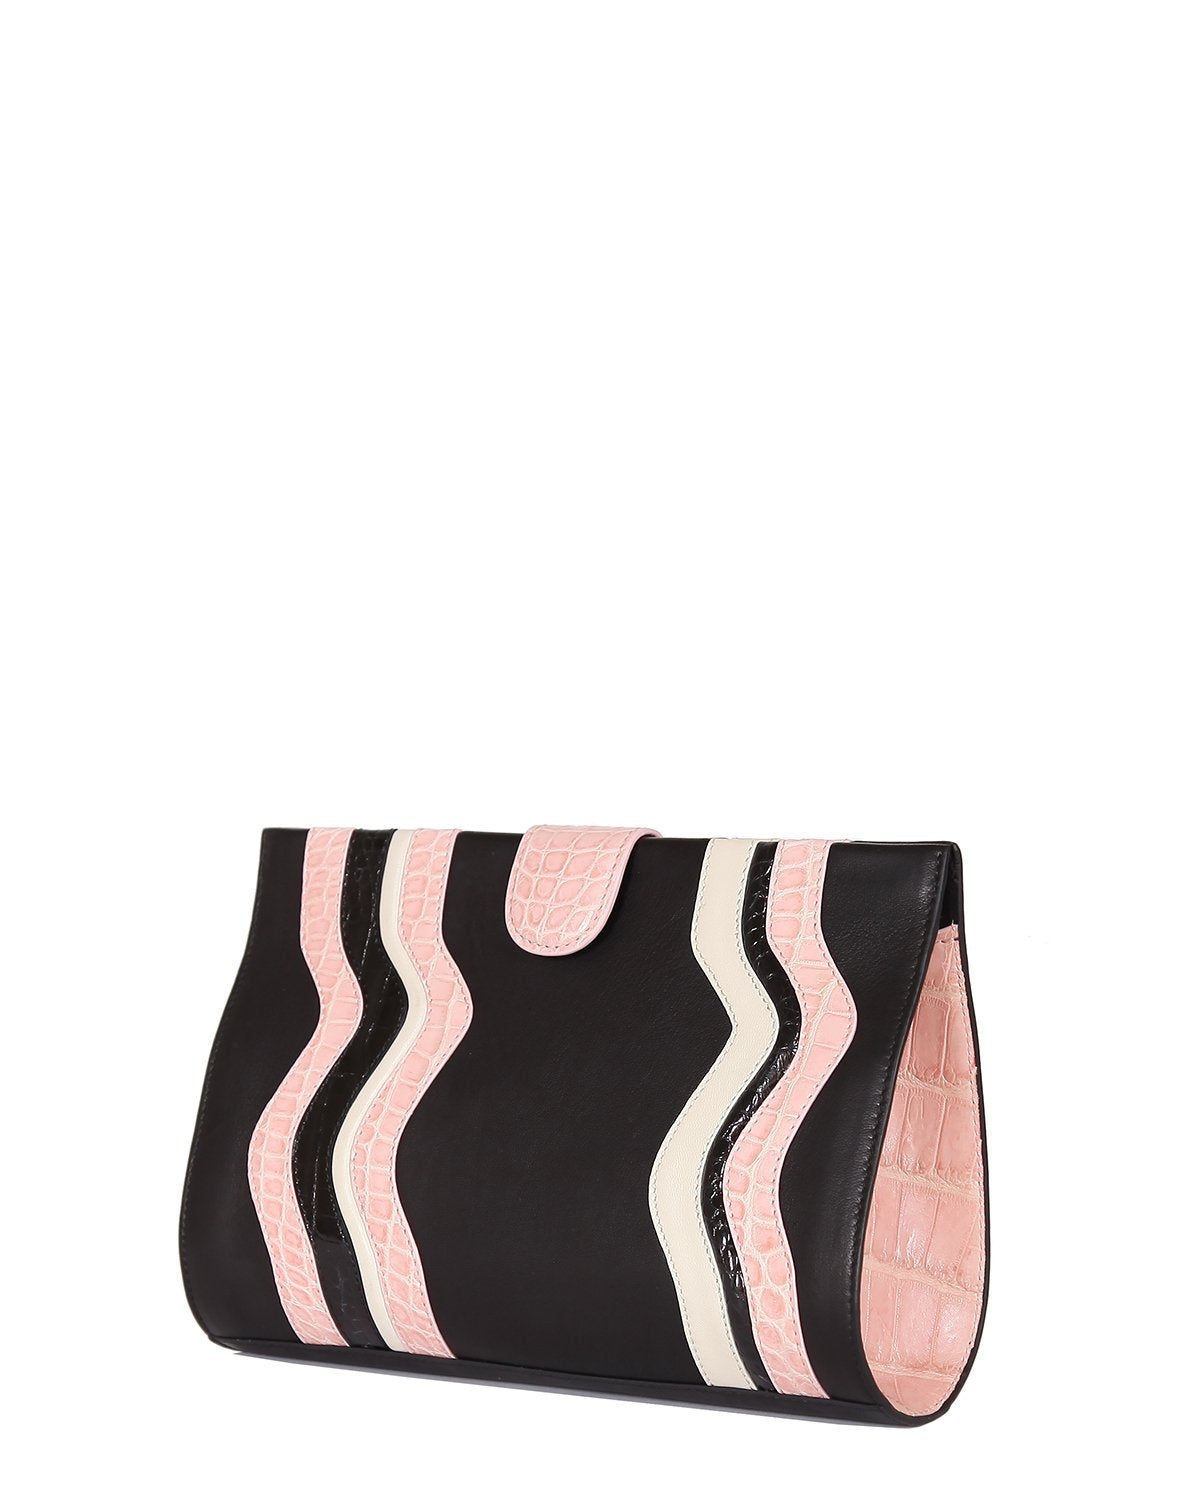 Black Lambskin Clutch with Genuine American Alligator pink and black wavy trims angle view side gusset in pink alligator